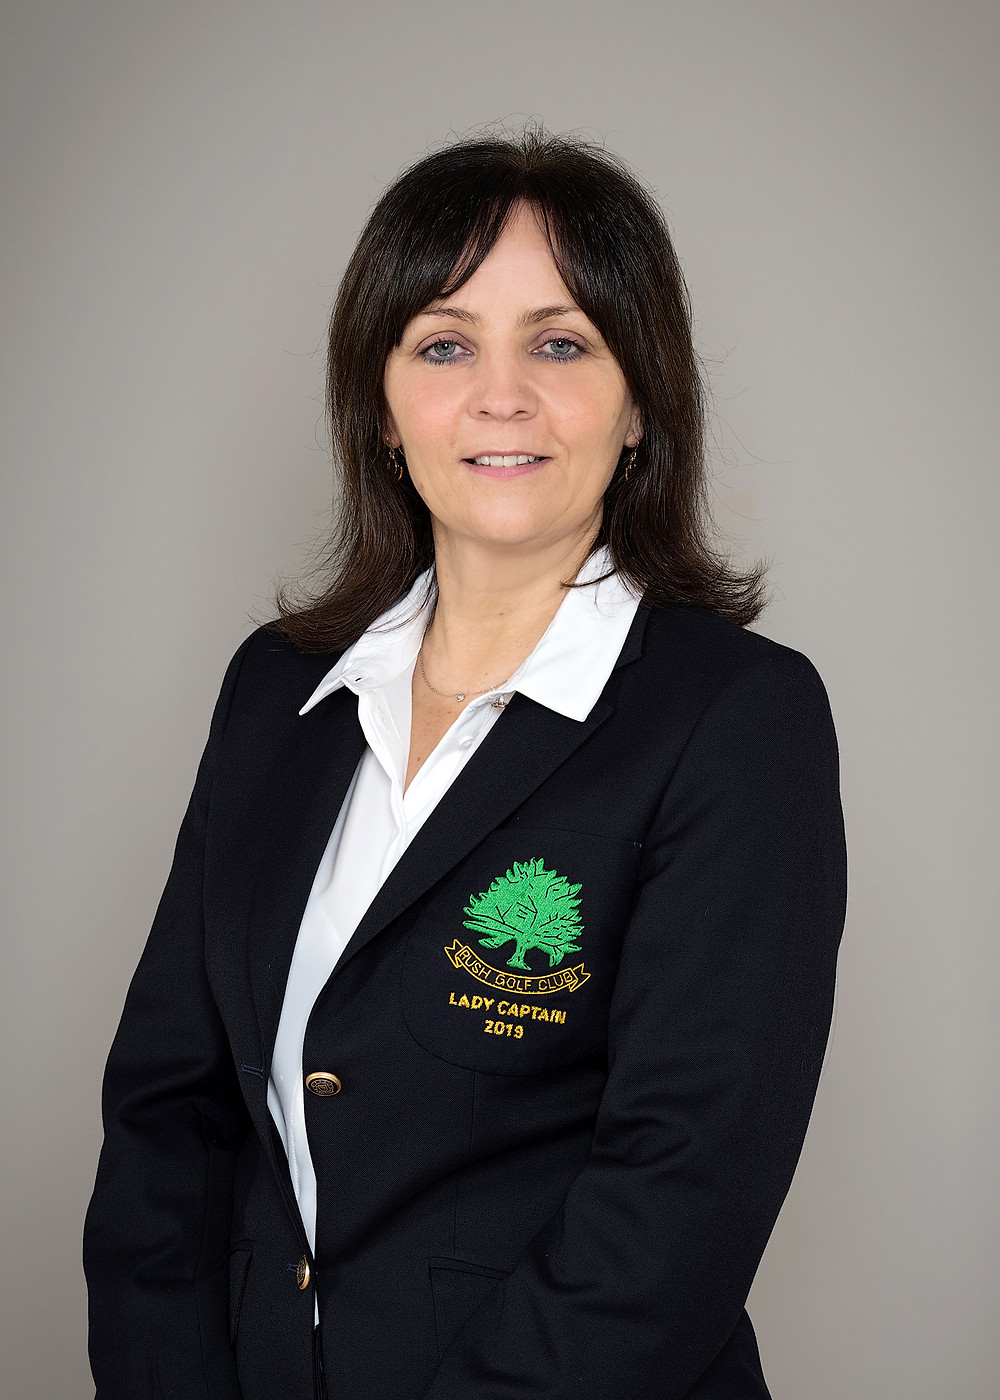 Linda Nugent - Rush golf Club Lady Captain 2019